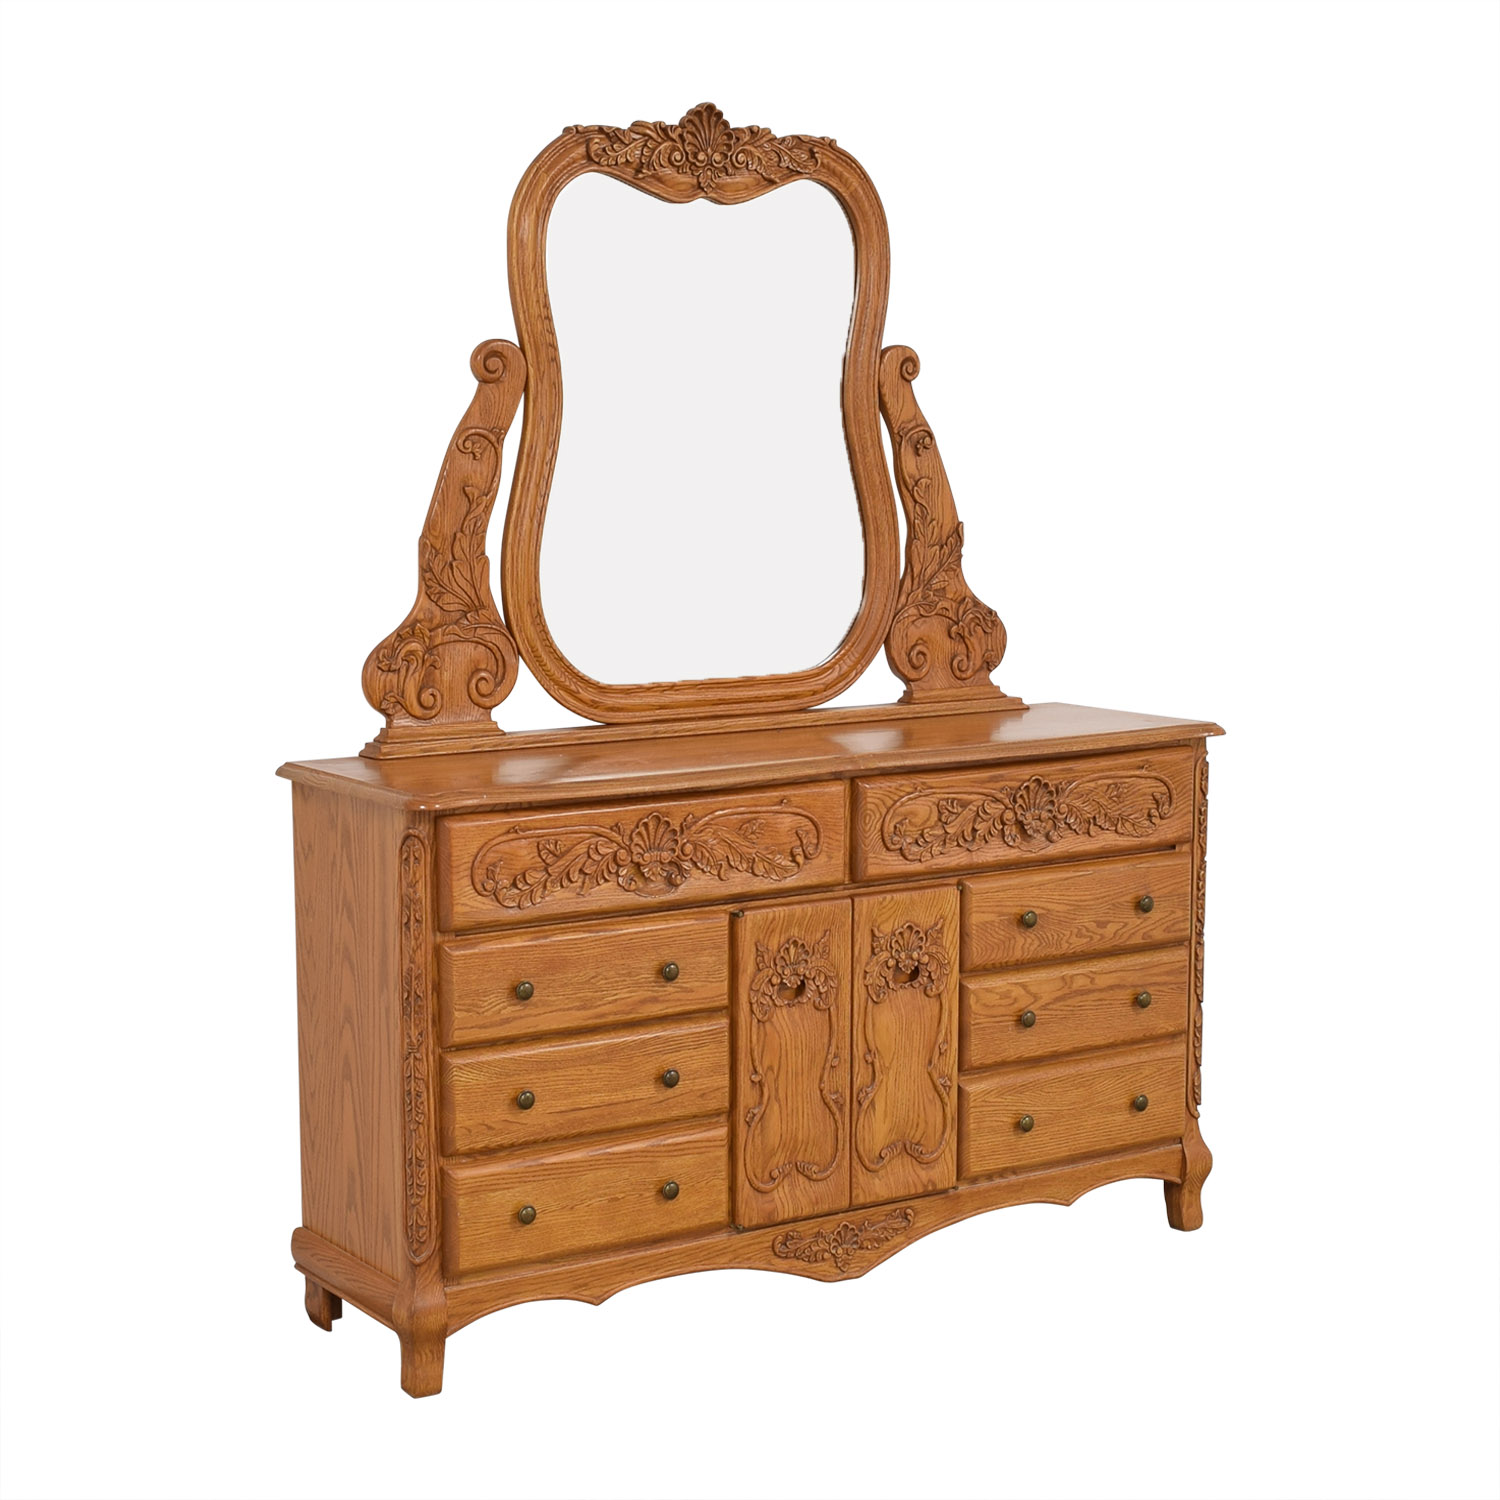 Eight Drawer Dresser with Mirror used